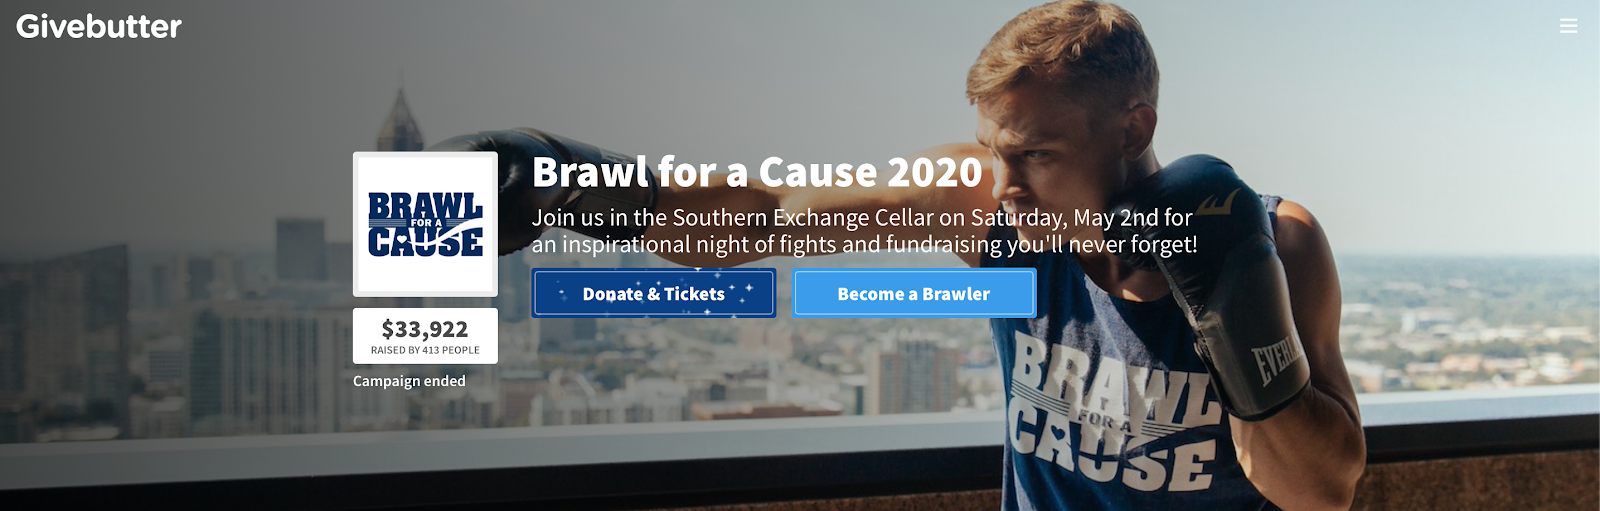 Givebutter Brawl for a Cause 2020